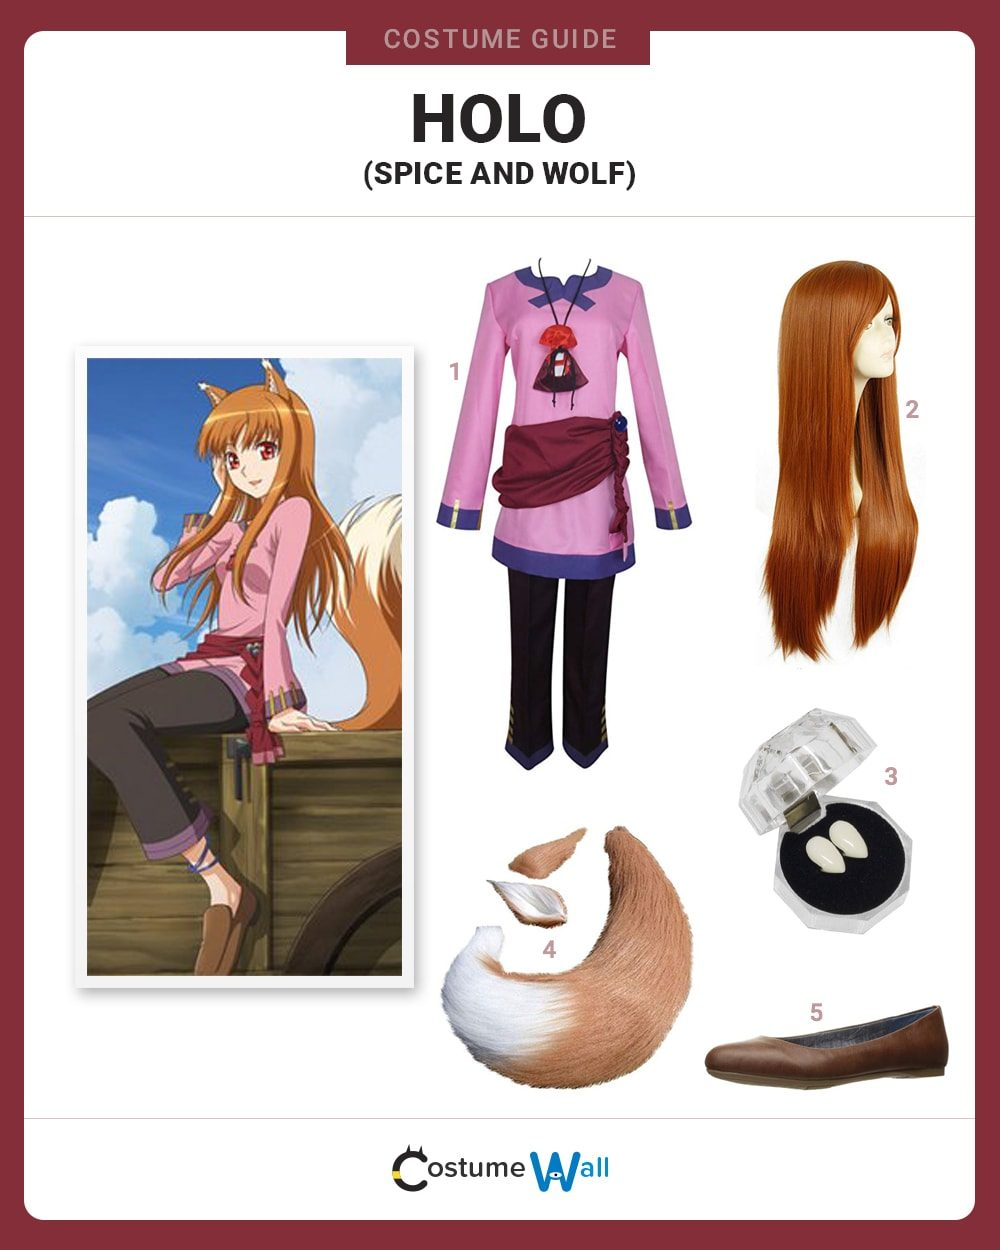 Holo Costume Guide